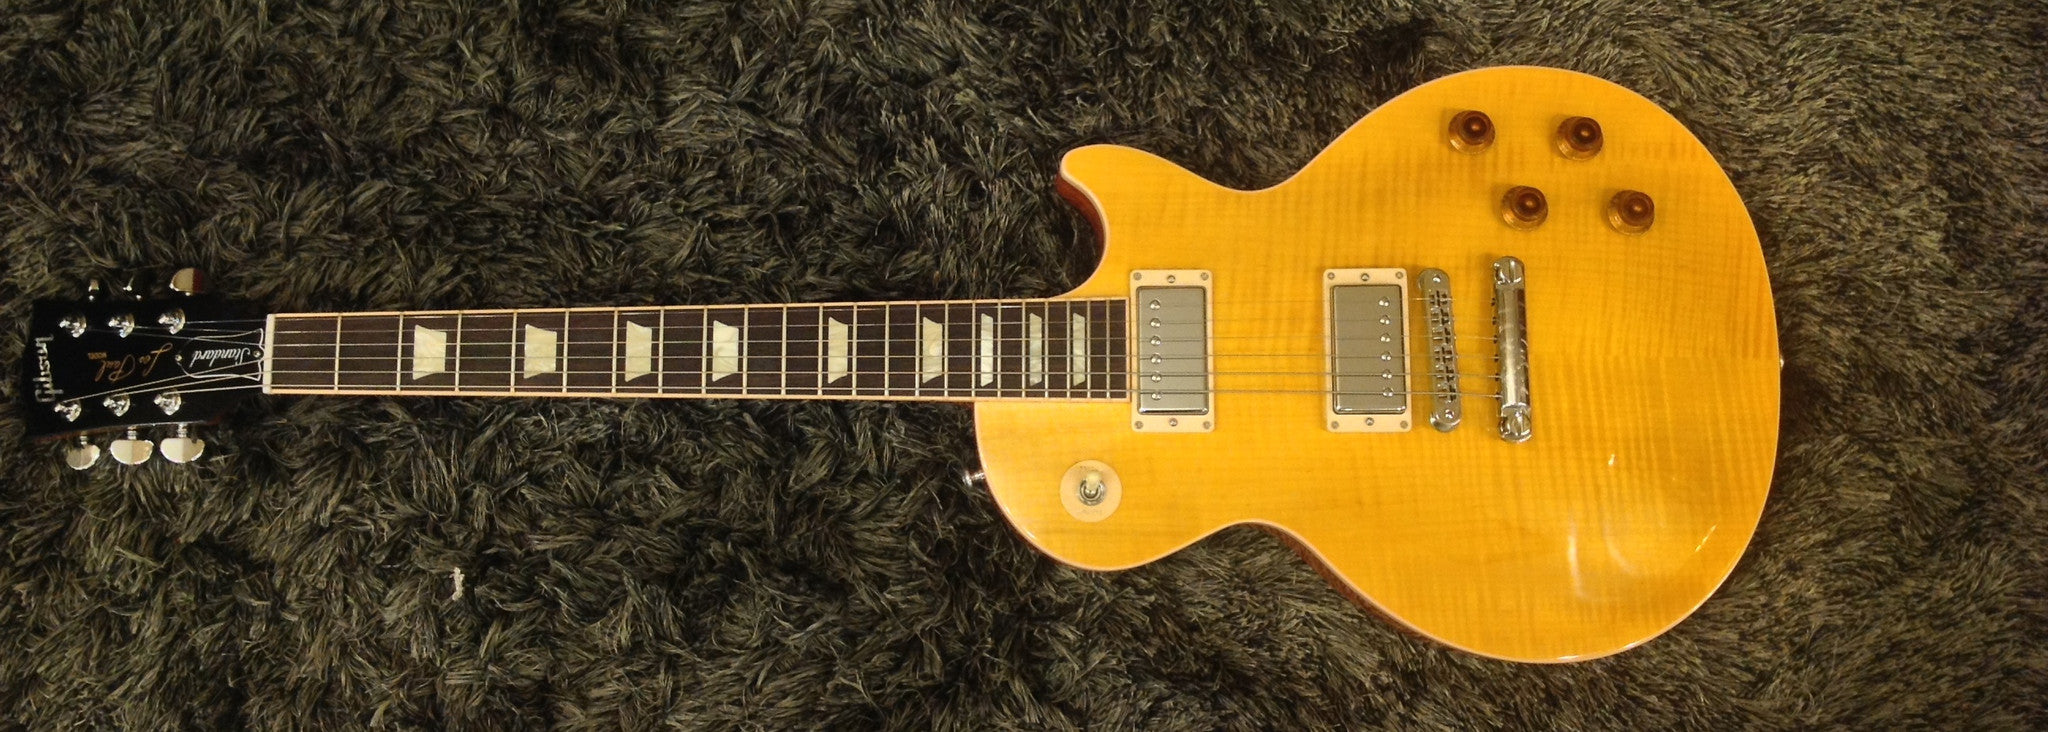 Gibson 2016 Les Paul Standard Plus Top T Electric Guitar (with Case), Transparent Amber Gibson - HIENDGUITAR.COM